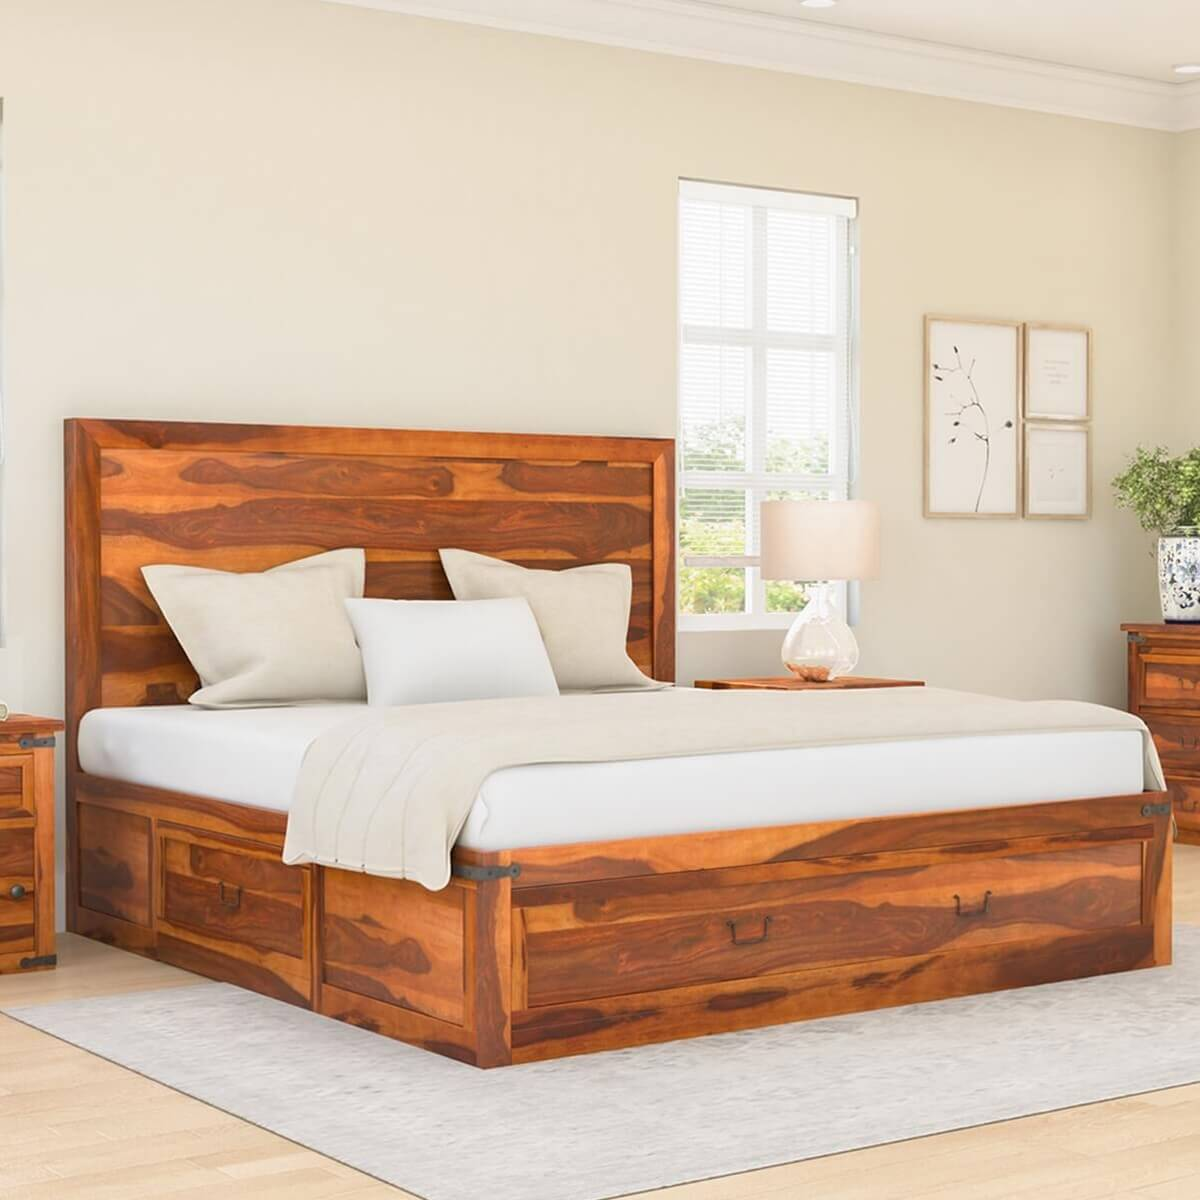 Classic Shaker Solid Wood Storage Platform Captain's Bed